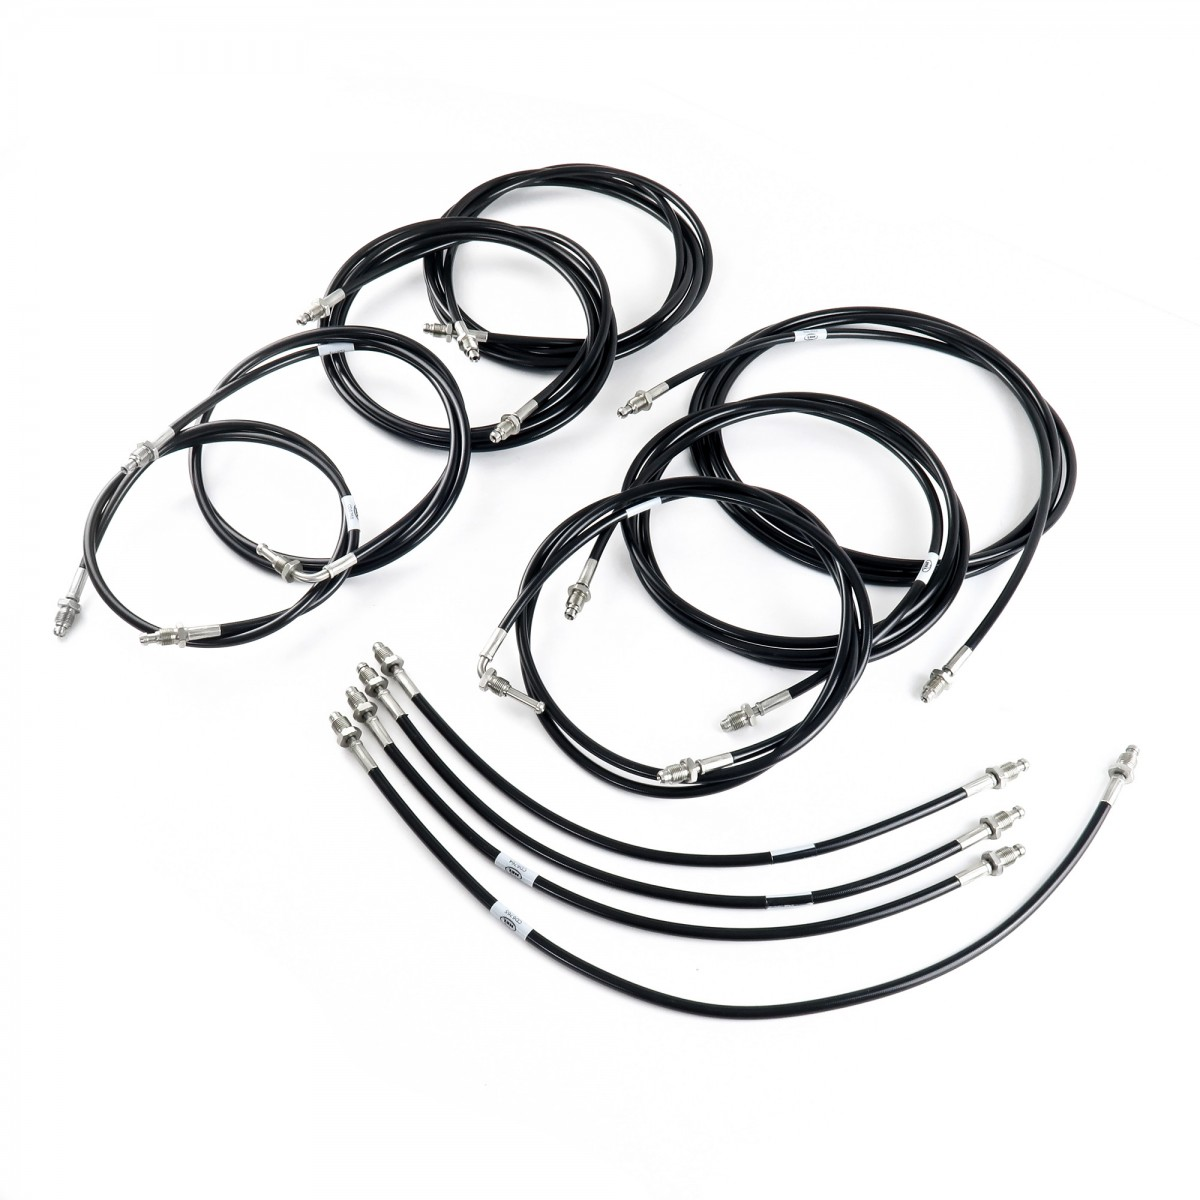 Bentley Continental (1990-1991) Hydraulic Roof Hoses